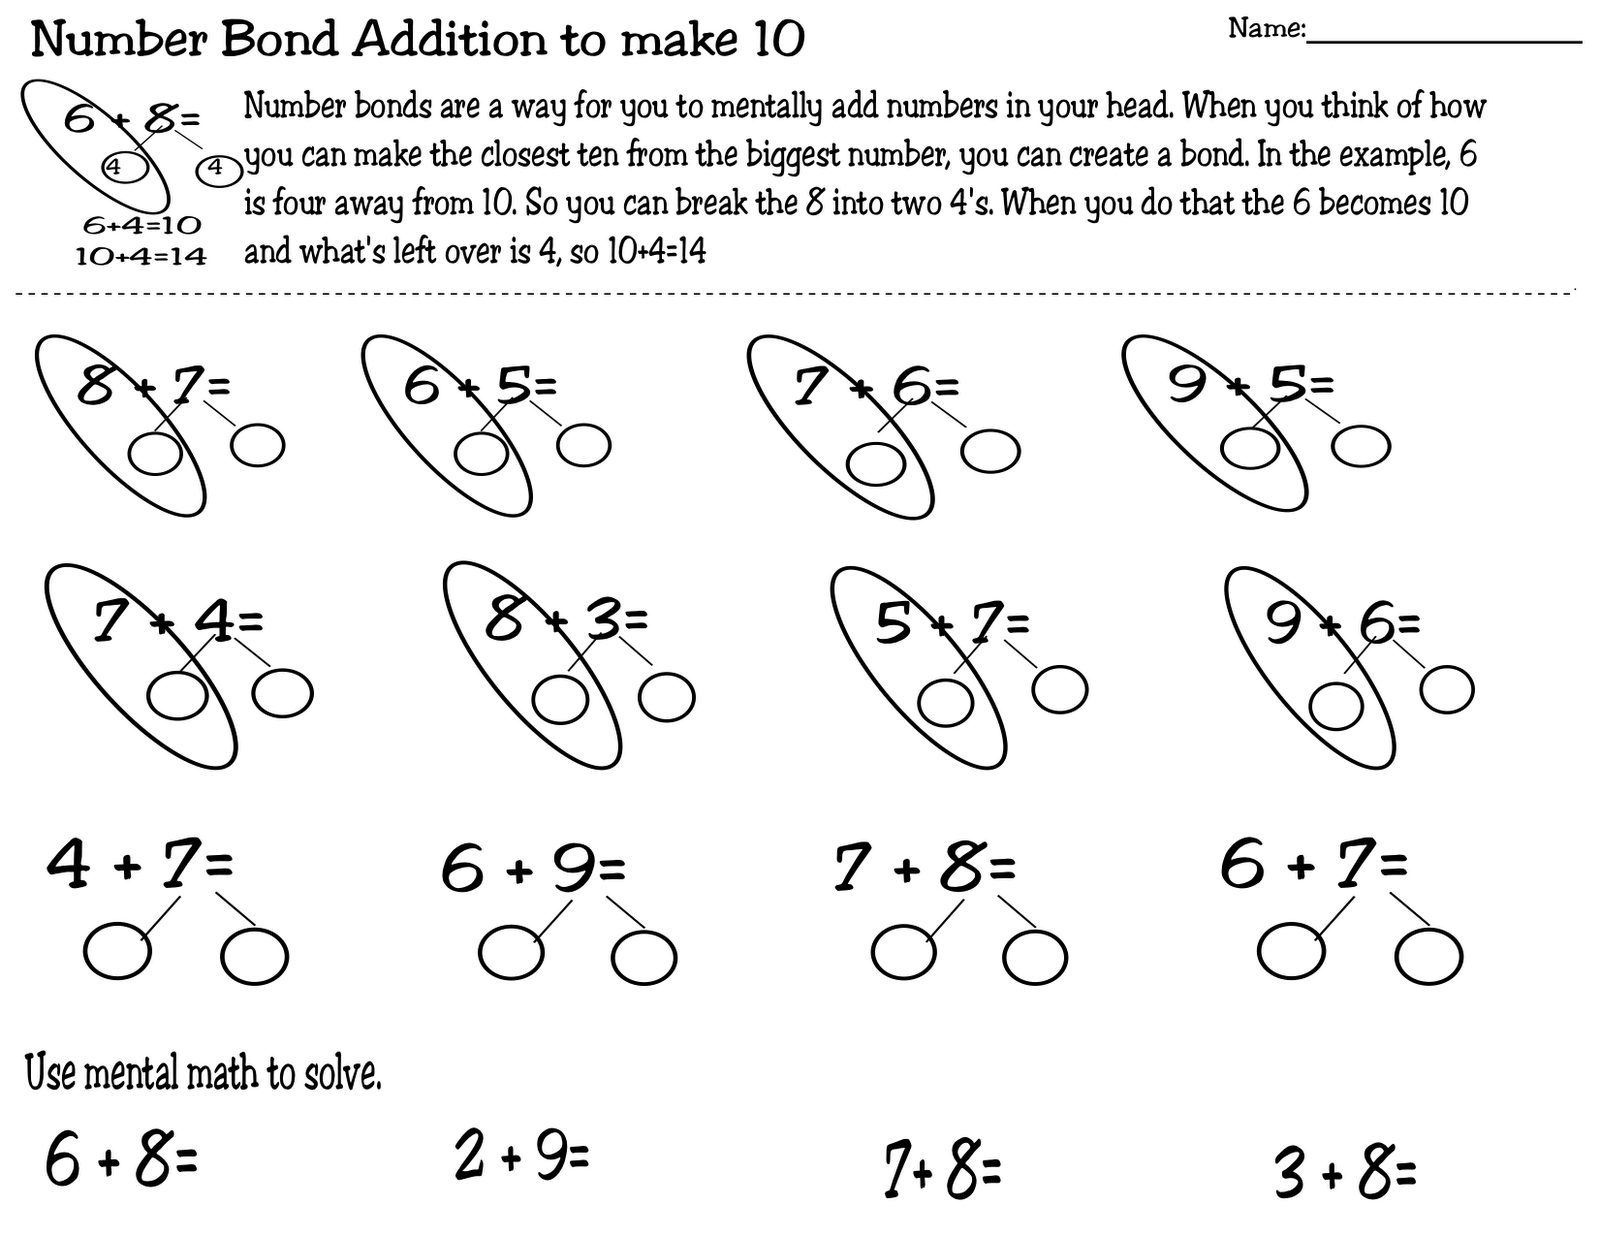 worksheet September 11 Worksheets teaching mrs t september 2012 to answer this gap in their learning i have created a few worksheets these number bonds and decomposing numbers for addition am working on 3